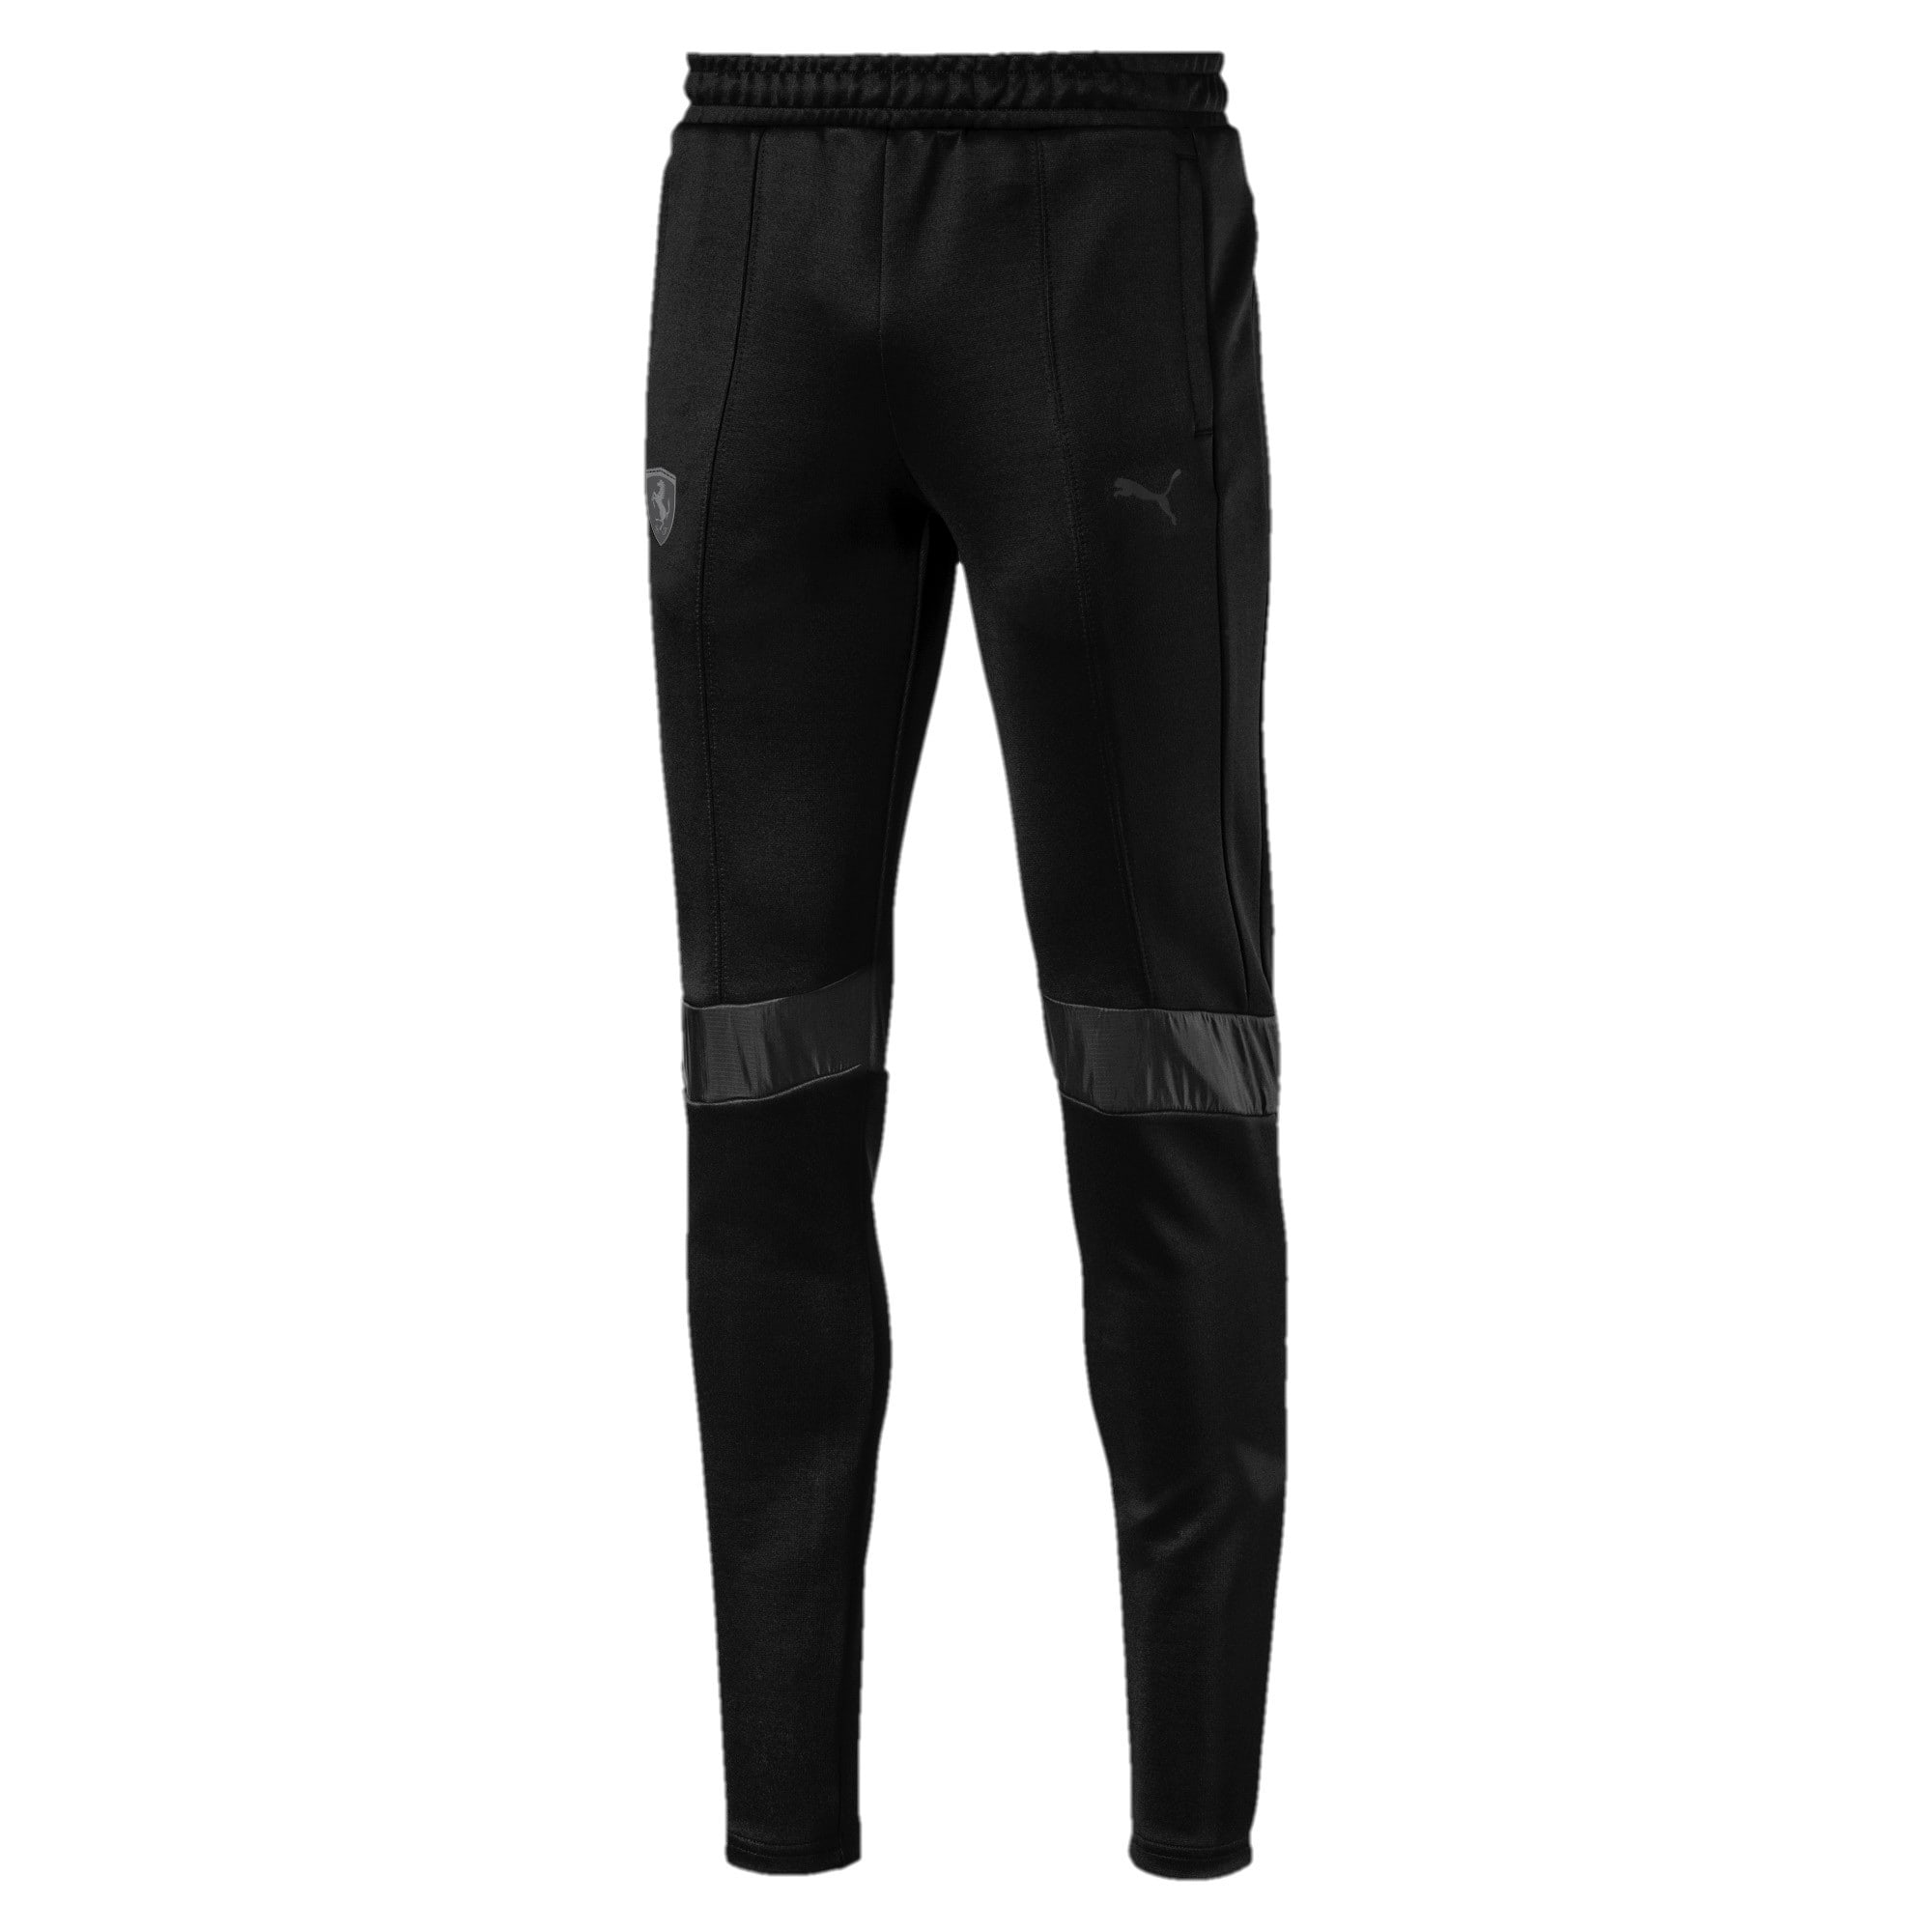 Thumbnail 1 of Ferrari T7 Men's Track Pants, Puma Black, medium